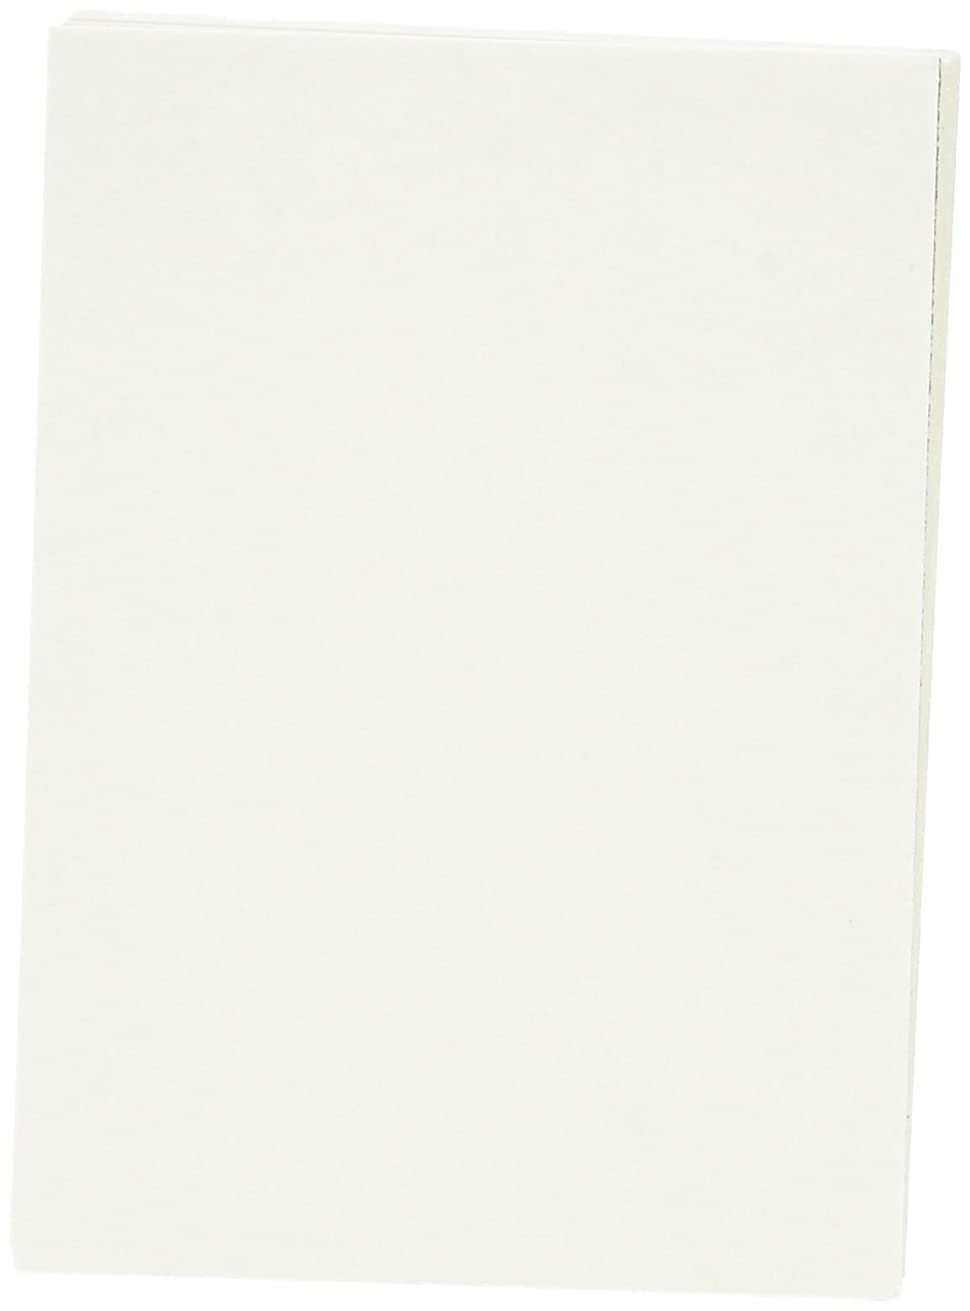 Cover-It 4-Ply Artists Trading Card, White, 2-1/2 X 3-1/2 in, Pack of 52 - 1293516